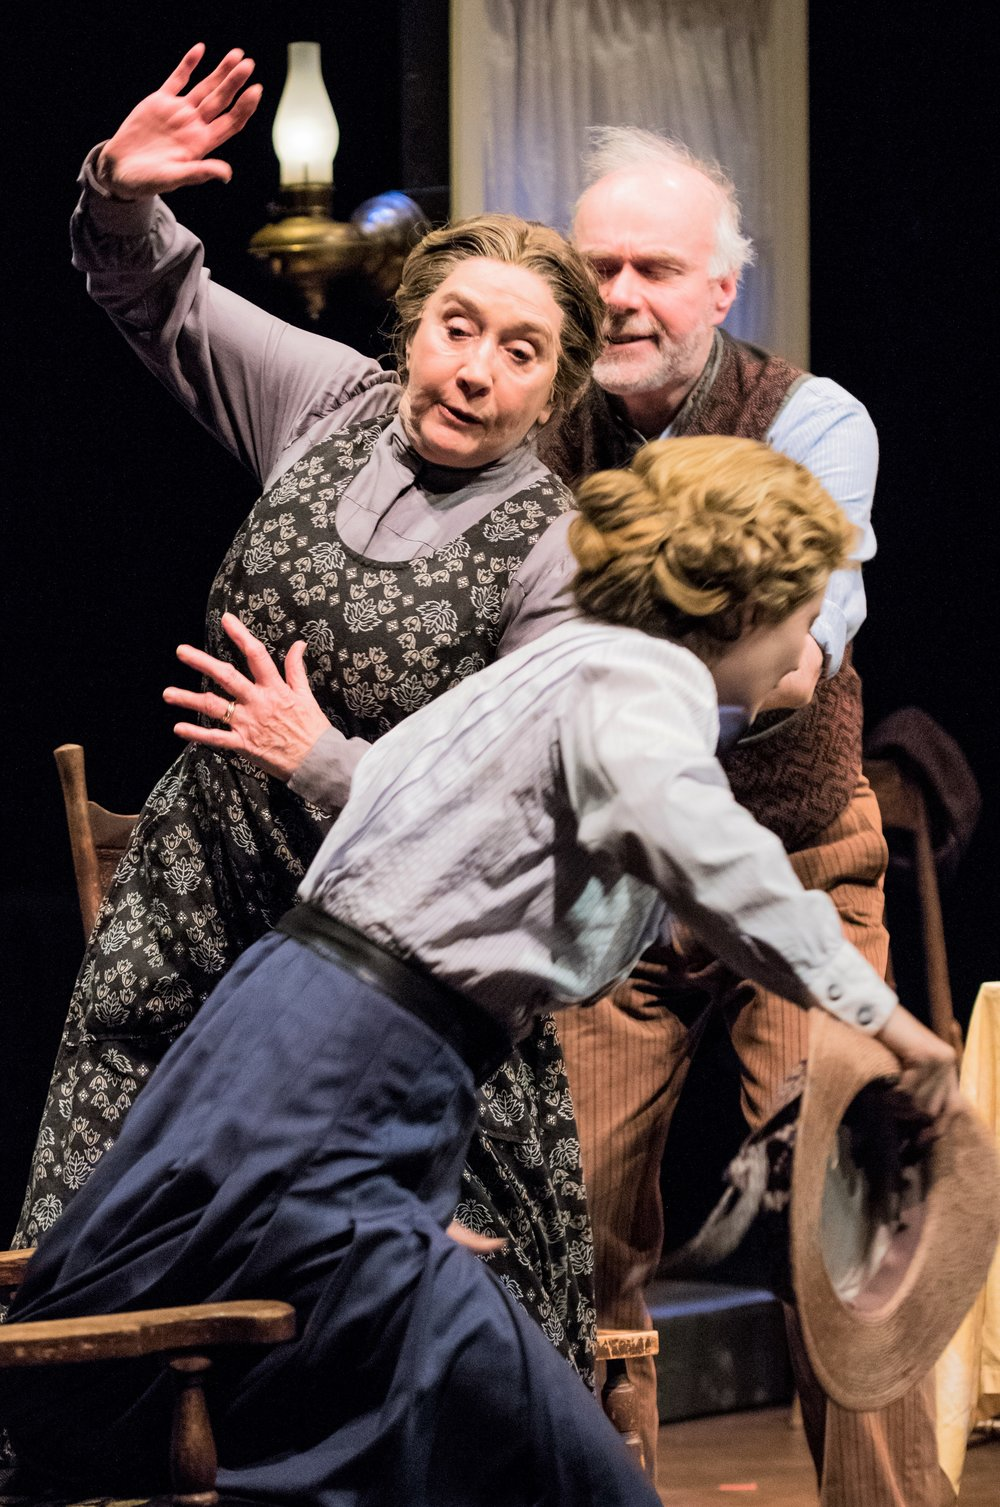 A Hawthorn family fracas, with Shipley, Brinkley, and paterfamilias Chris Hawthorn (Ken Marks). Photographs by Todd Cerveris.